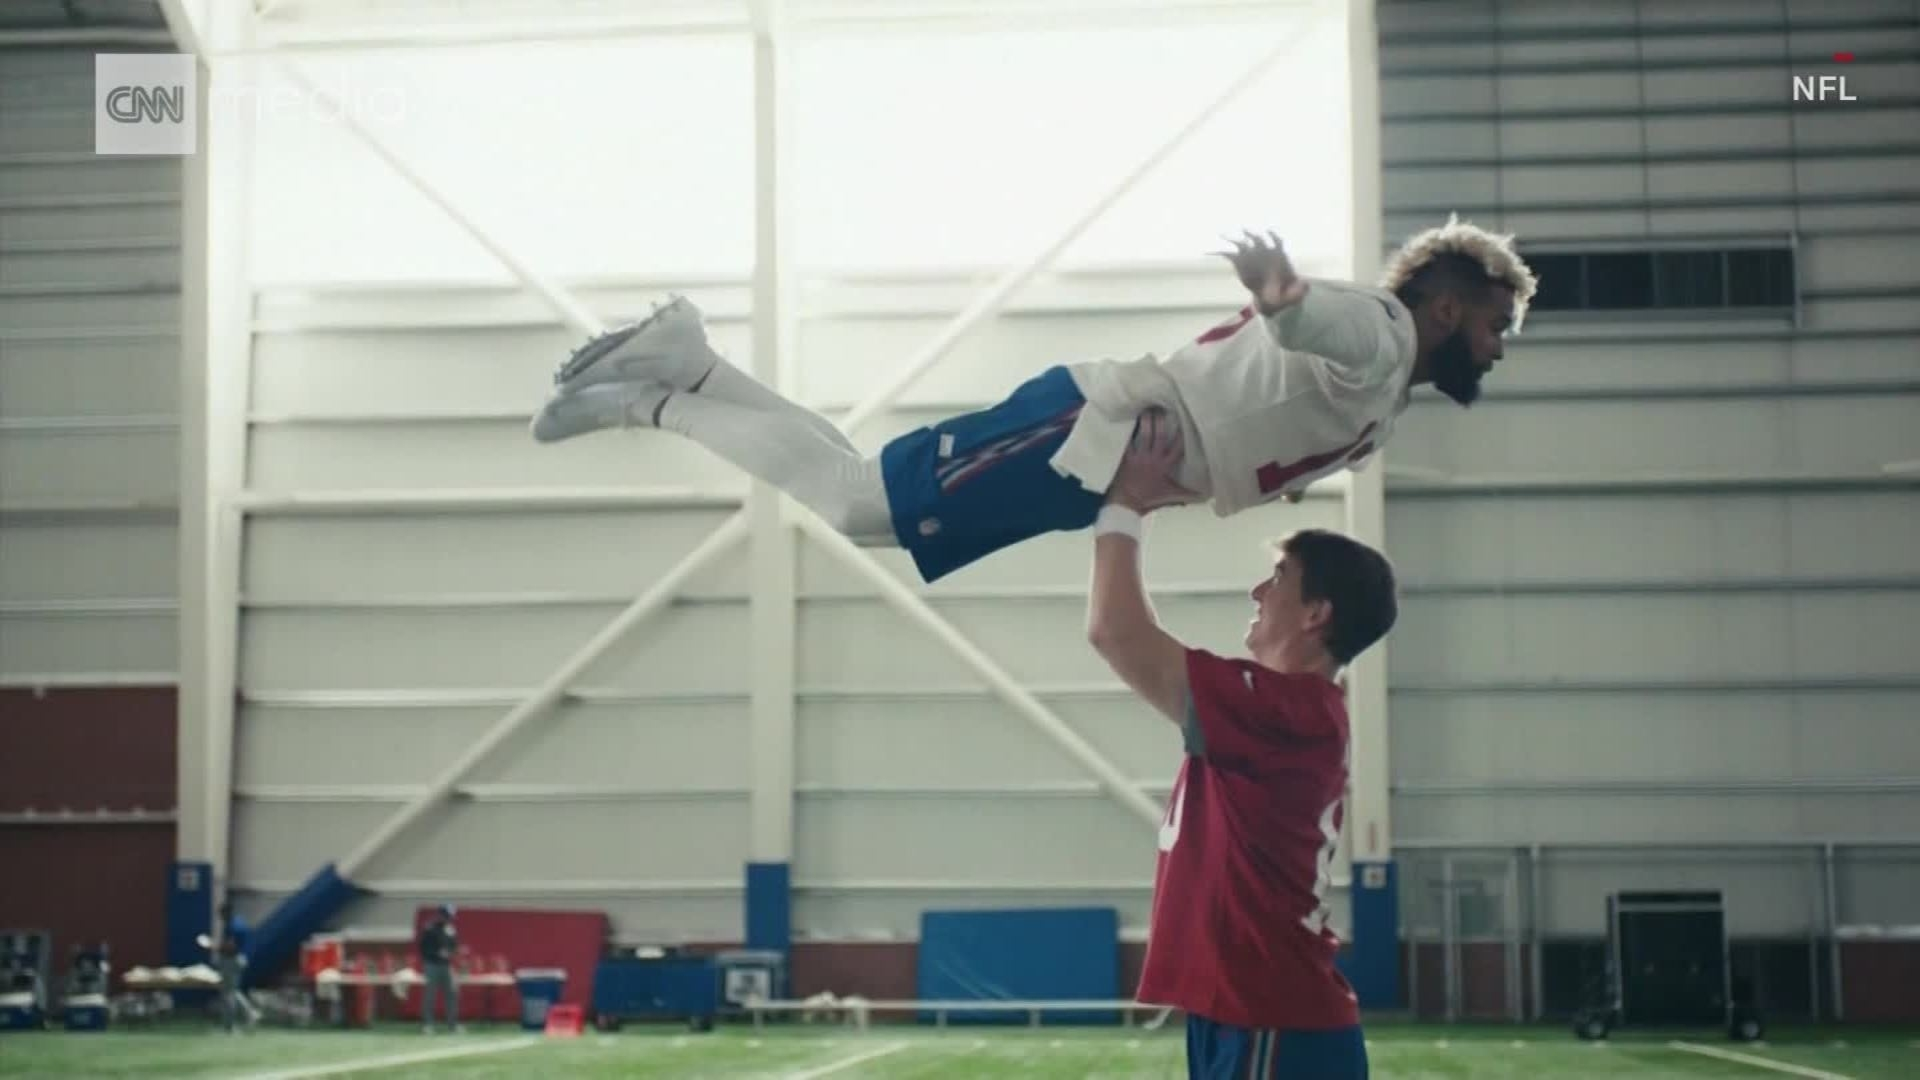 The Most Memorable 2018 Super Bowl Ads with regard to Super Bowl Ads 2018